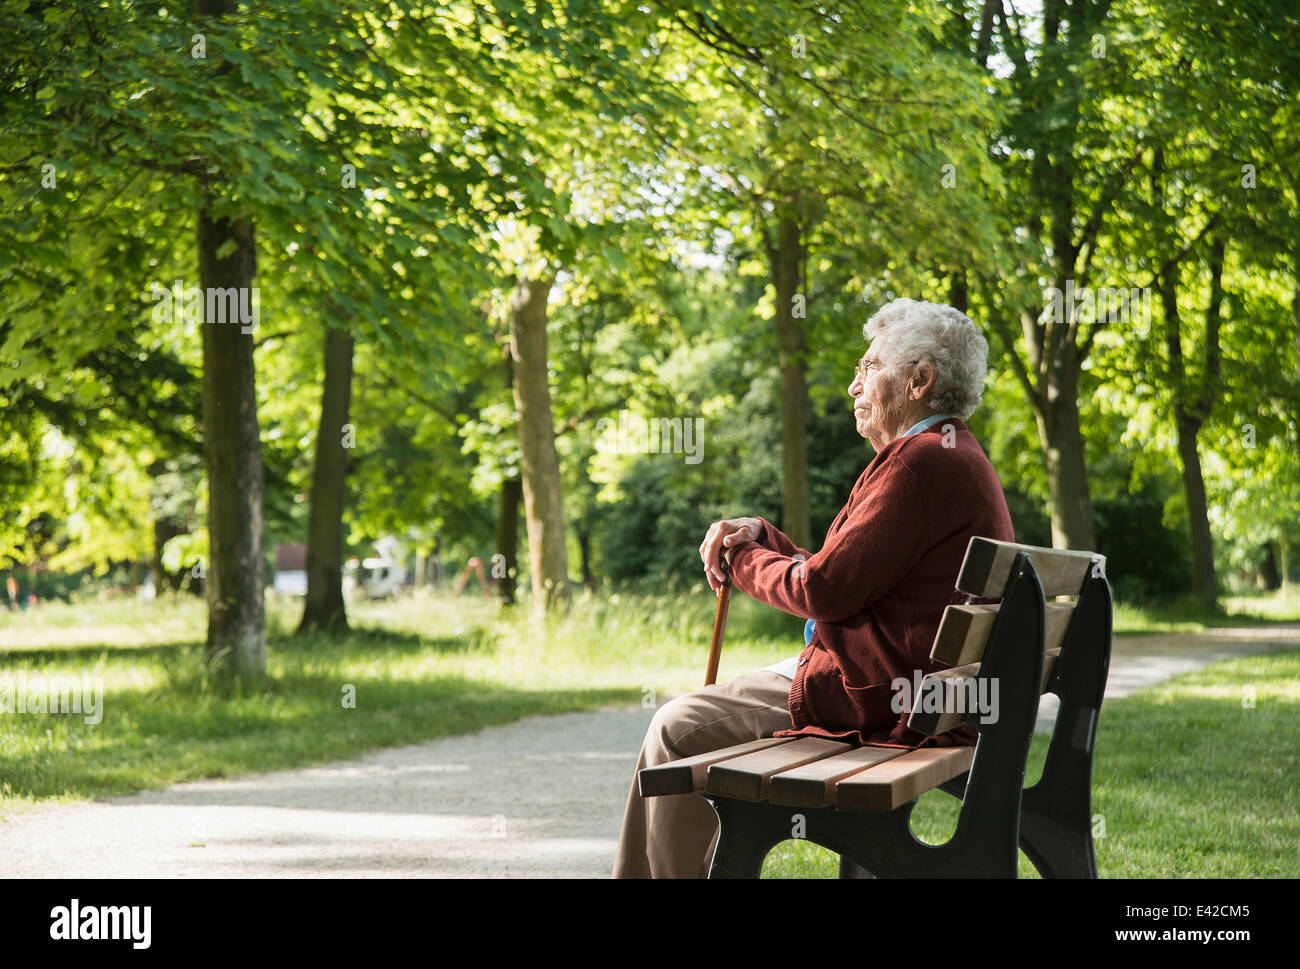 Senior woman sitting on park bench - Stock Image